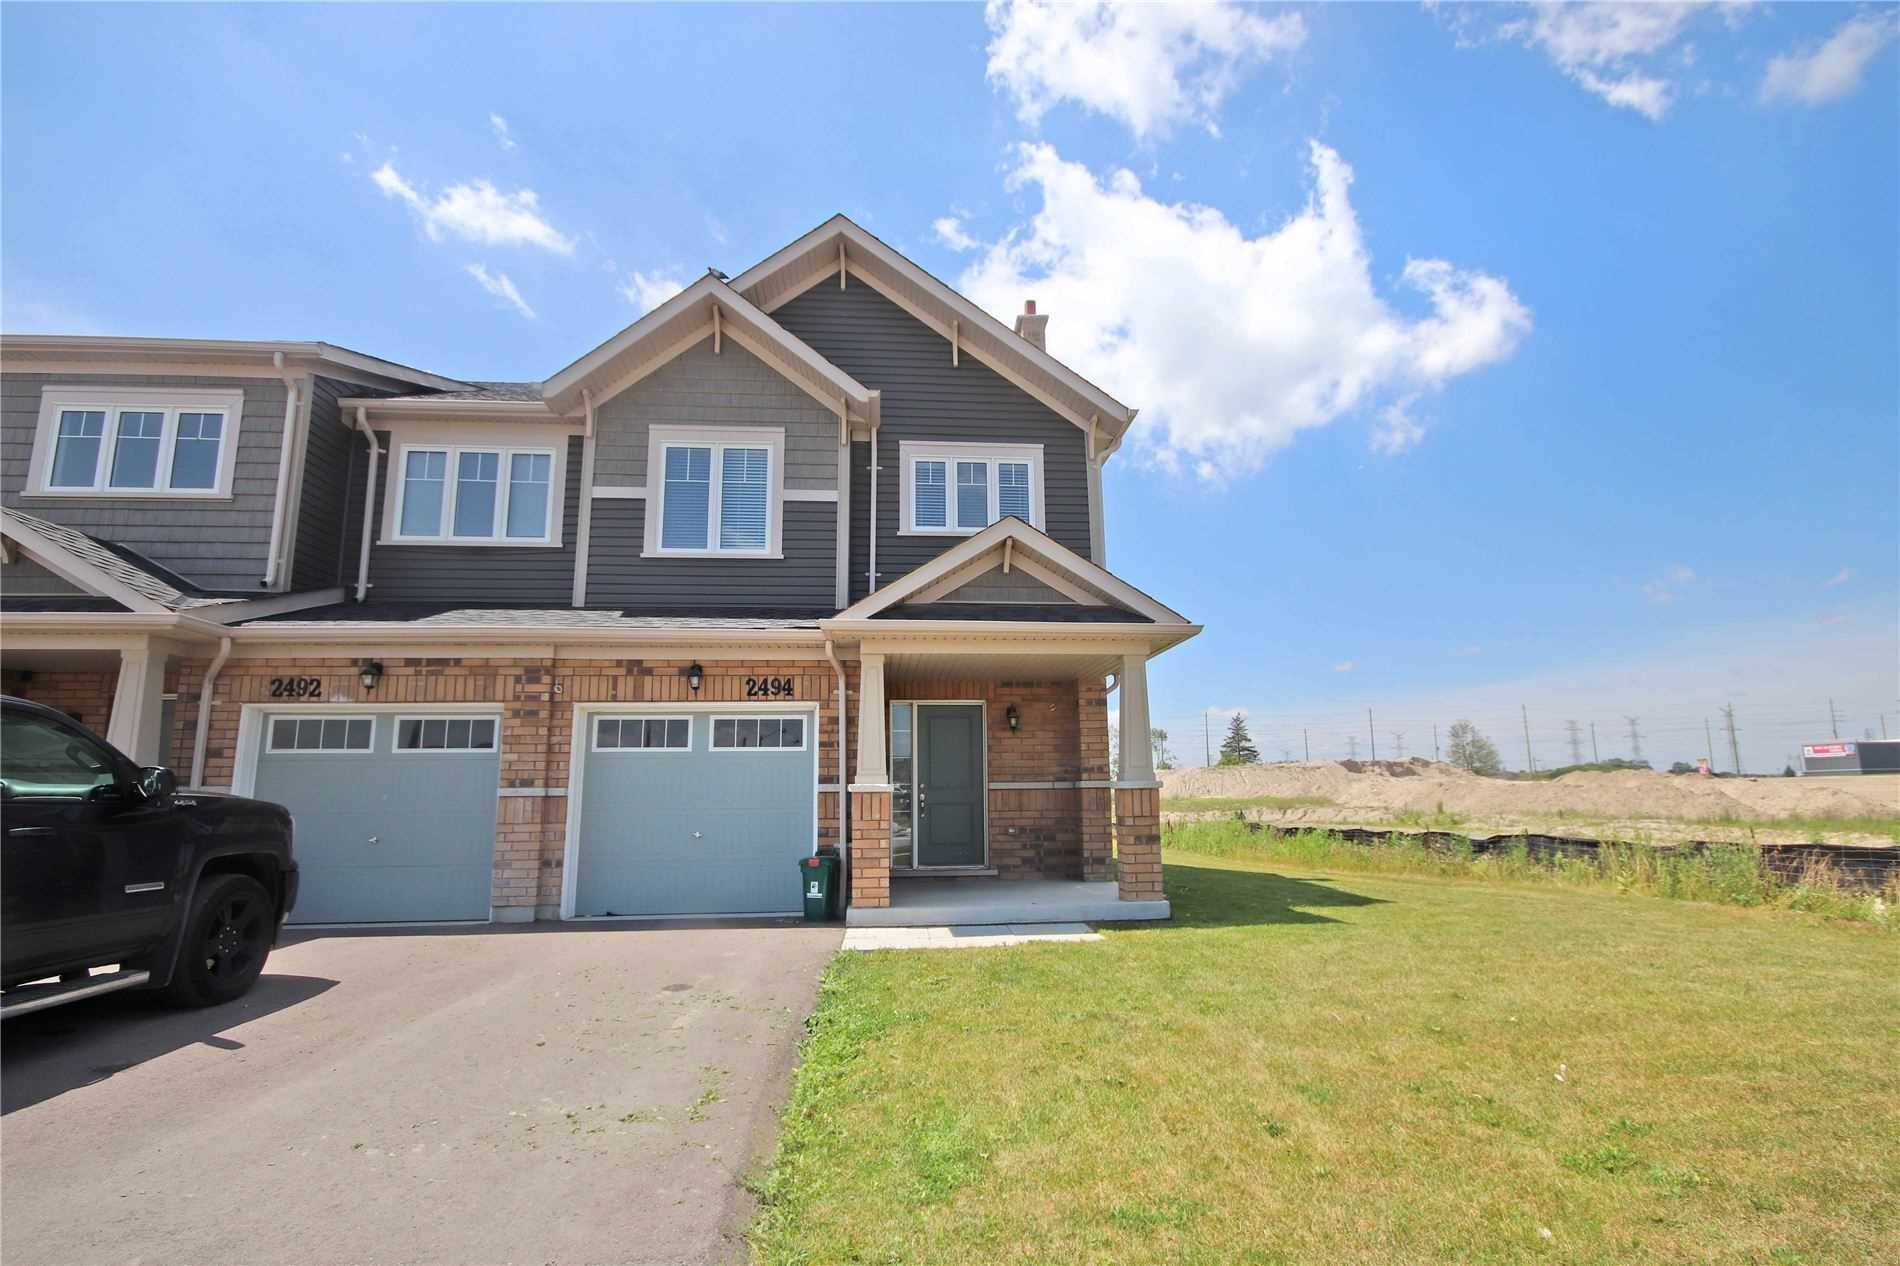 Townhouse for sale at 2494 Steeplechase St Oshawa Ontario - MLS: E4540846